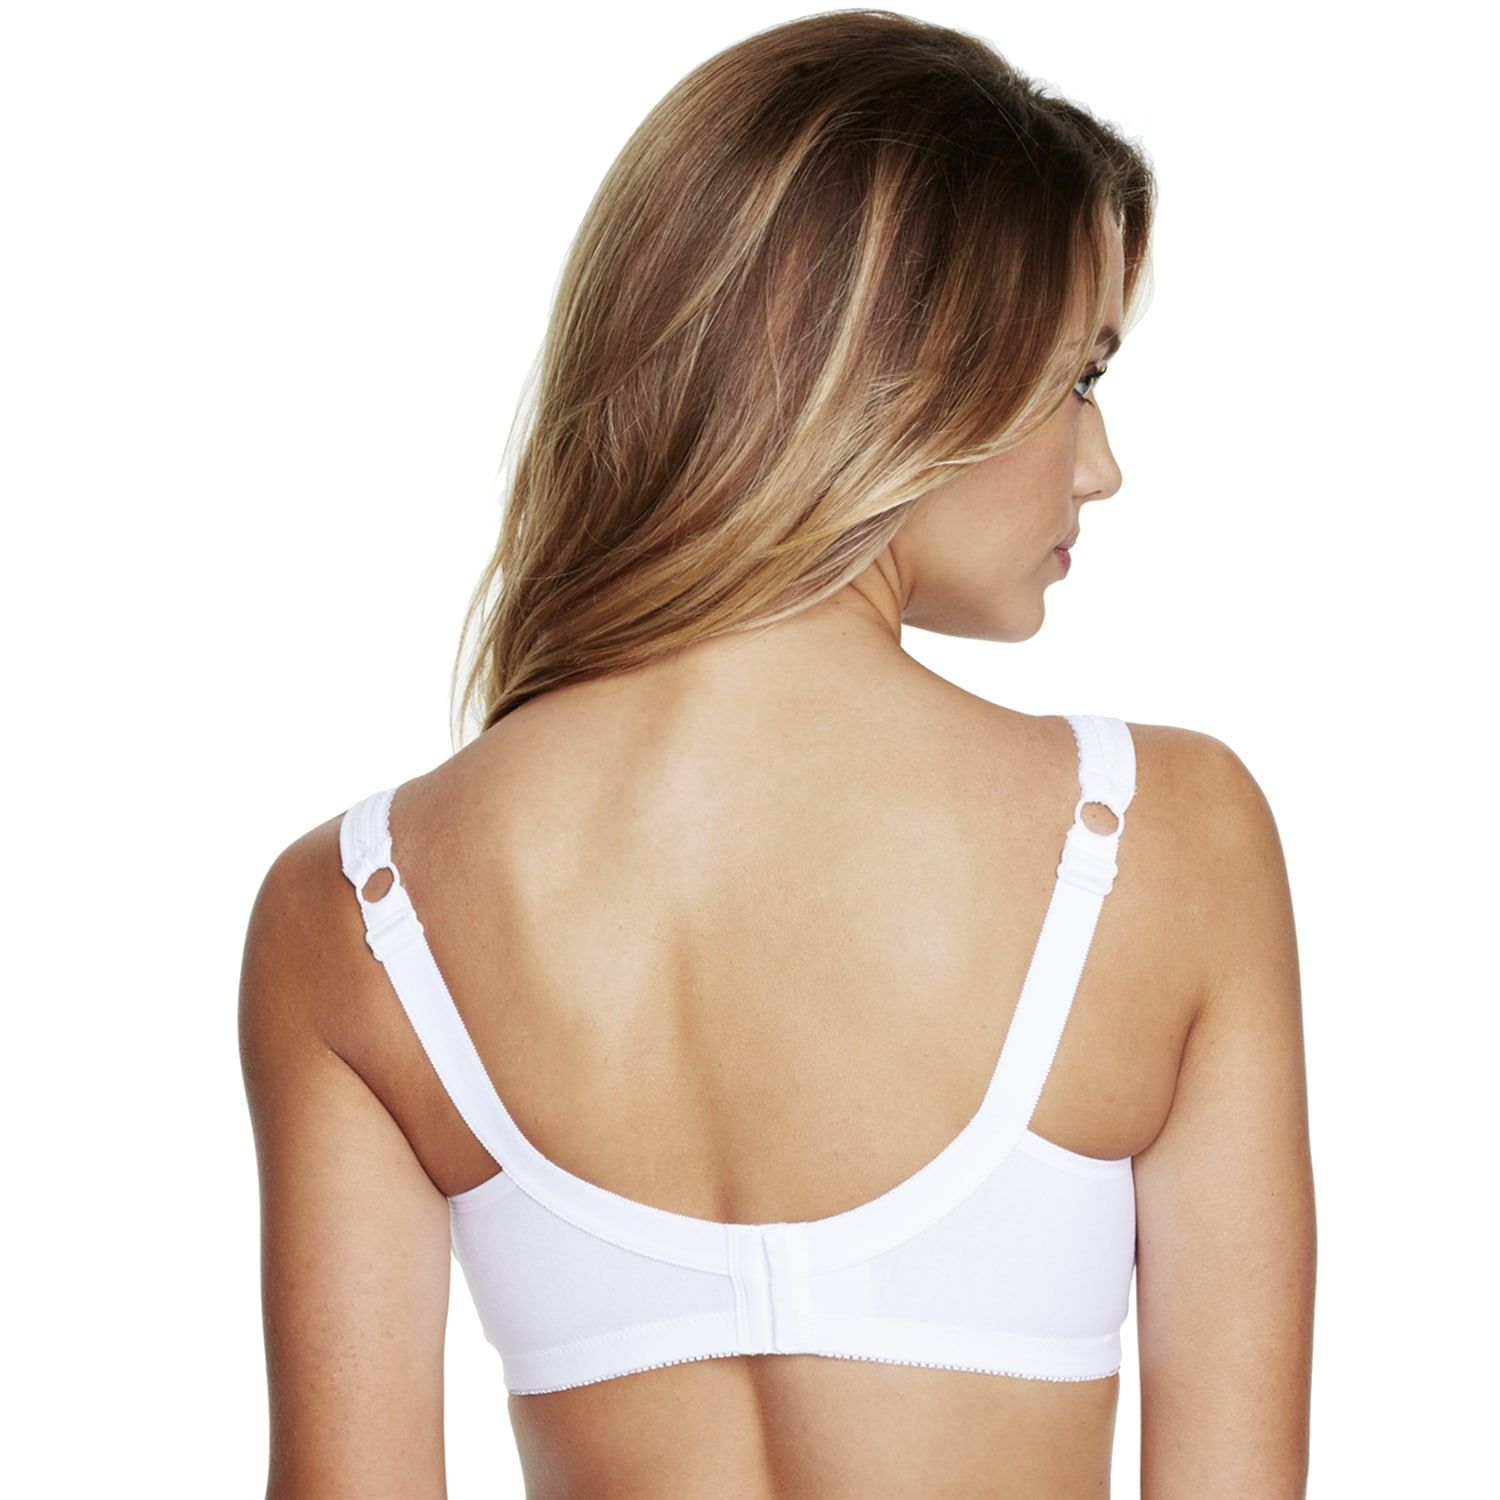 017c90873 DOMINIQUE Bras  Marcelle Everyday Wirefree Comfort Bra 5360  Marcelle